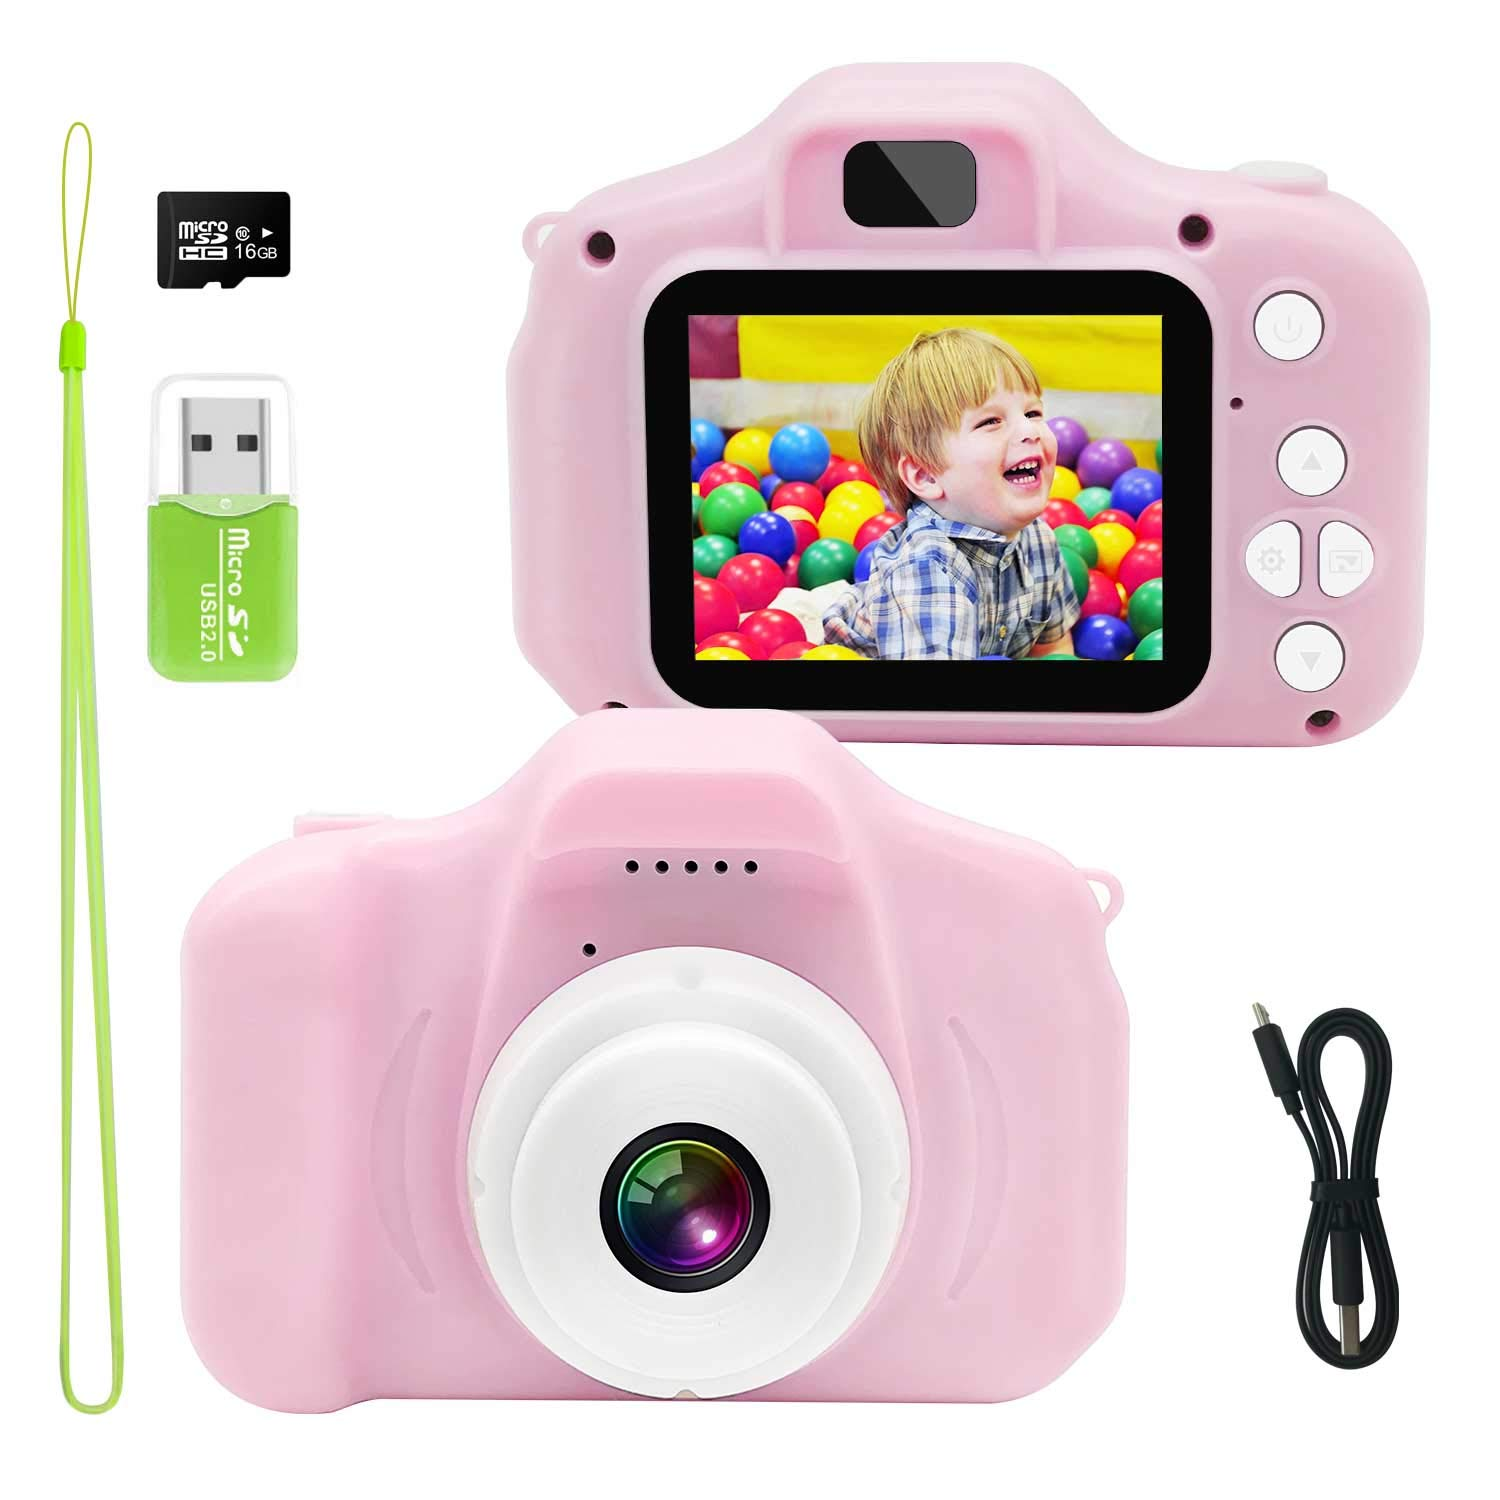 Kids Camera, Suitable Camera for Girls is Also a 5 Year Old Girl Gifts by Gretex (Image #1)